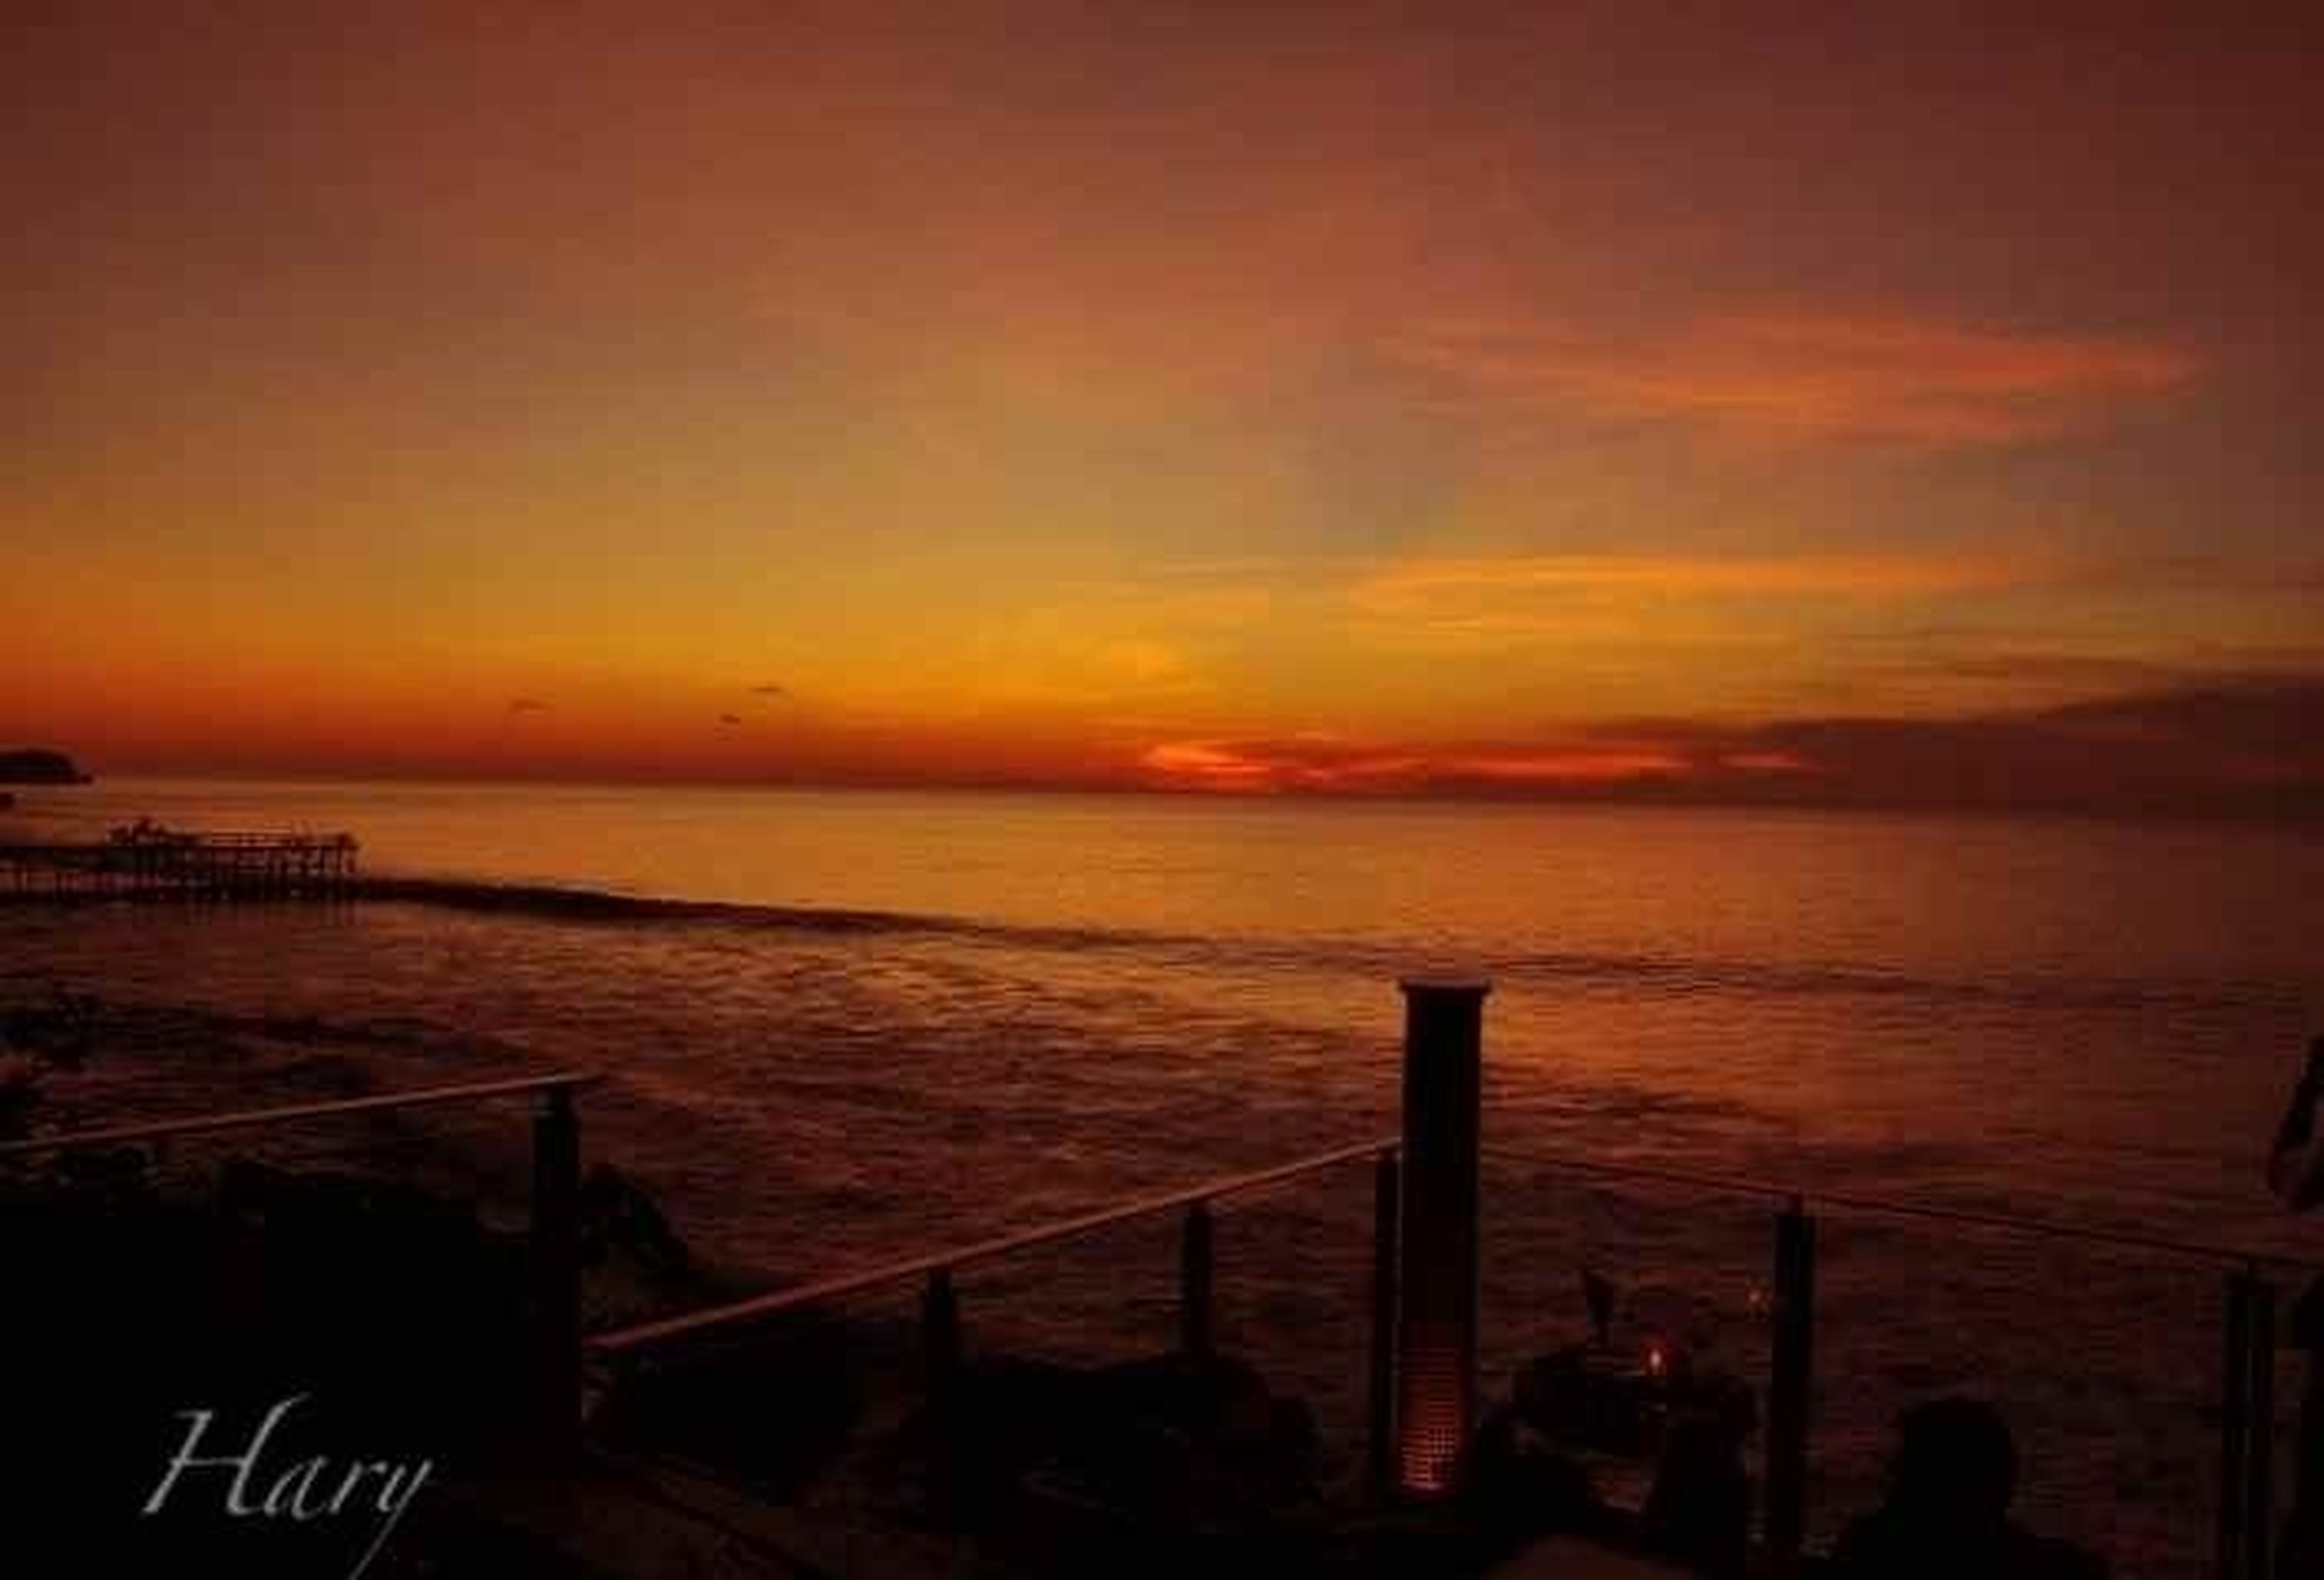 sunset, sea, water, horizon over water, scenics, tranquil scene, beauty in nature, tranquility, sky, orange color, idyllic, nature, beach, silhouette, pier, cloud - sky, outdoors, calm, no people, shore